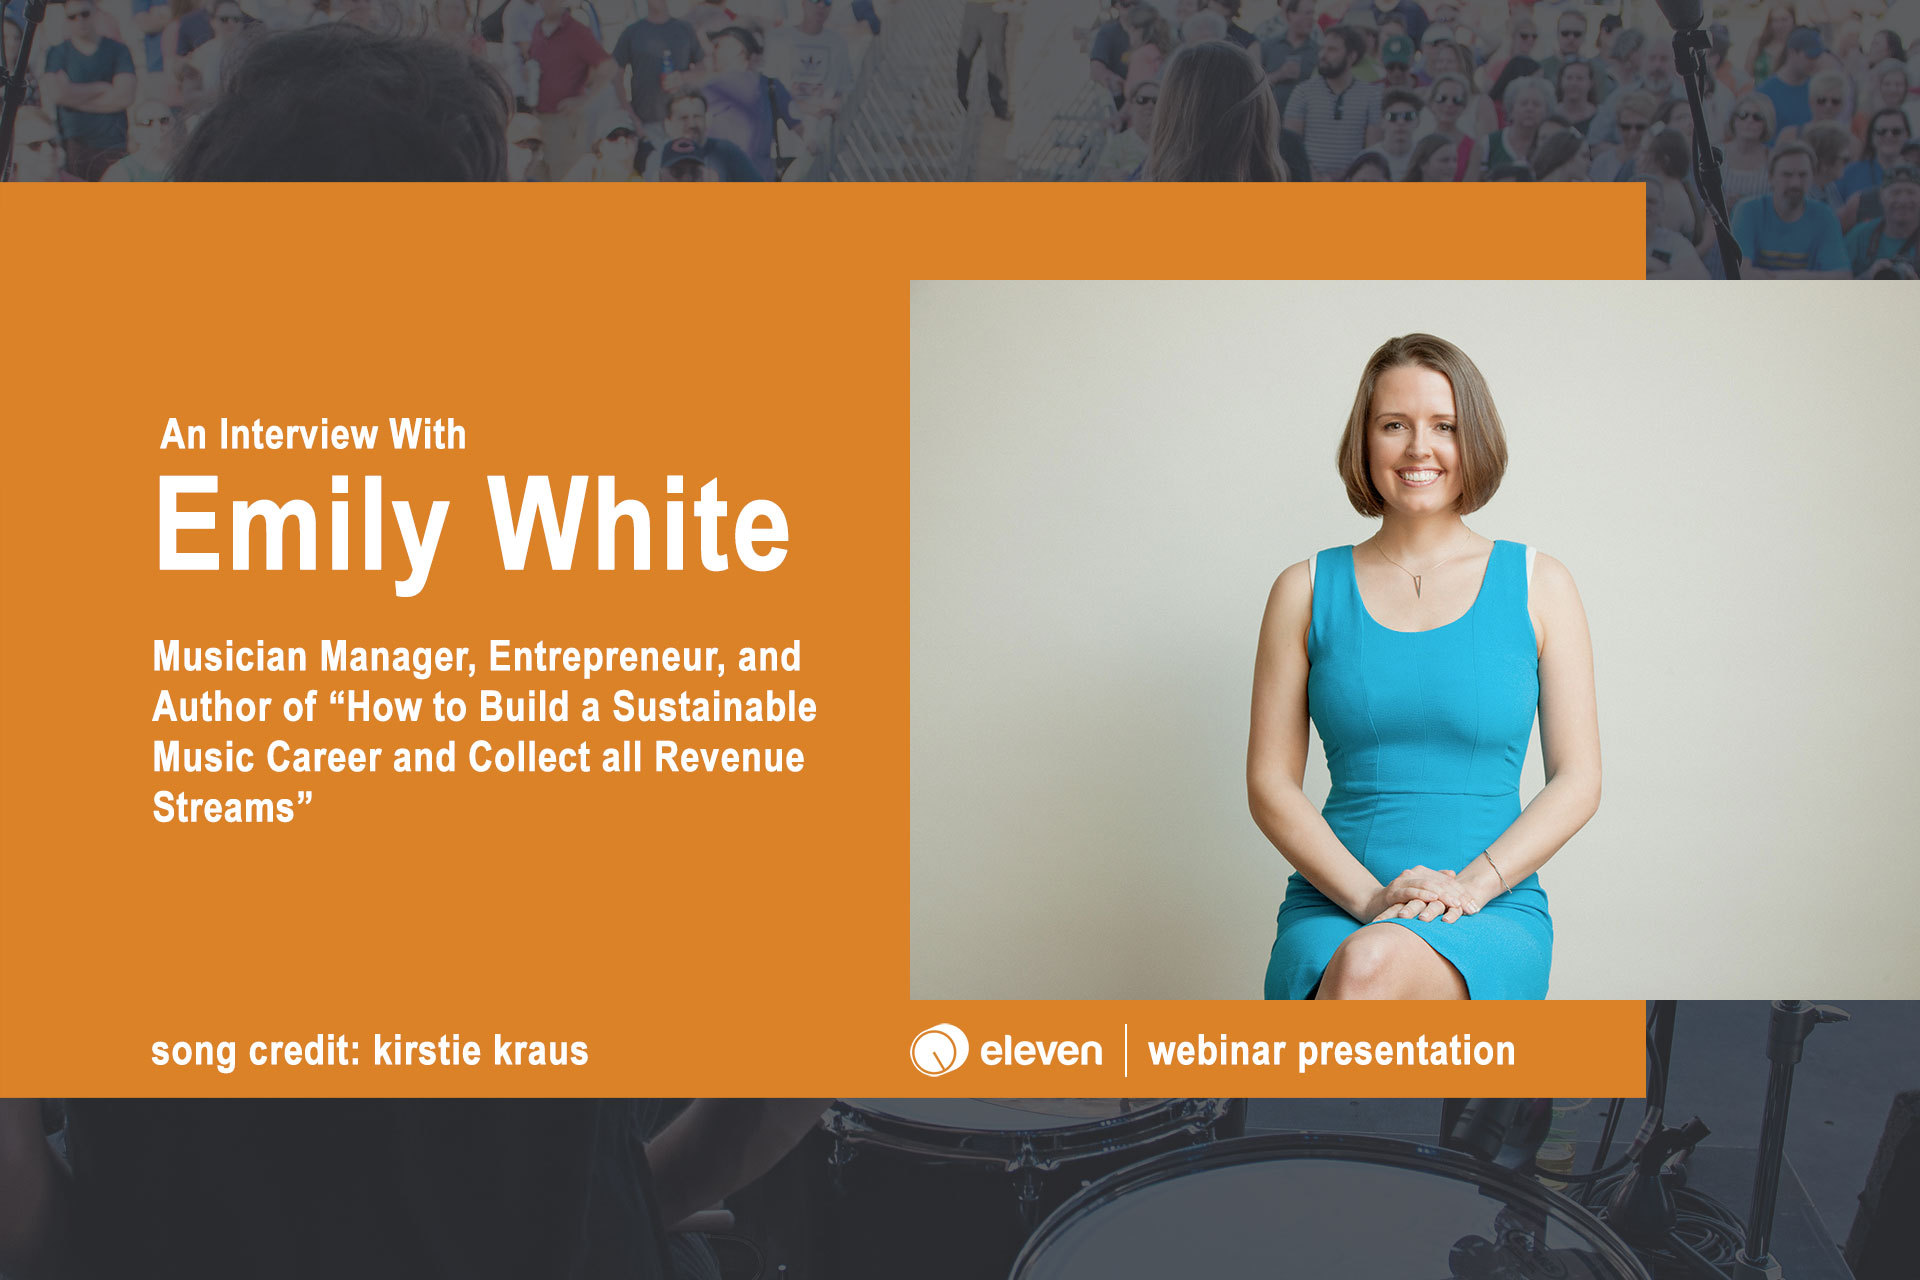 An Interview with Emily White